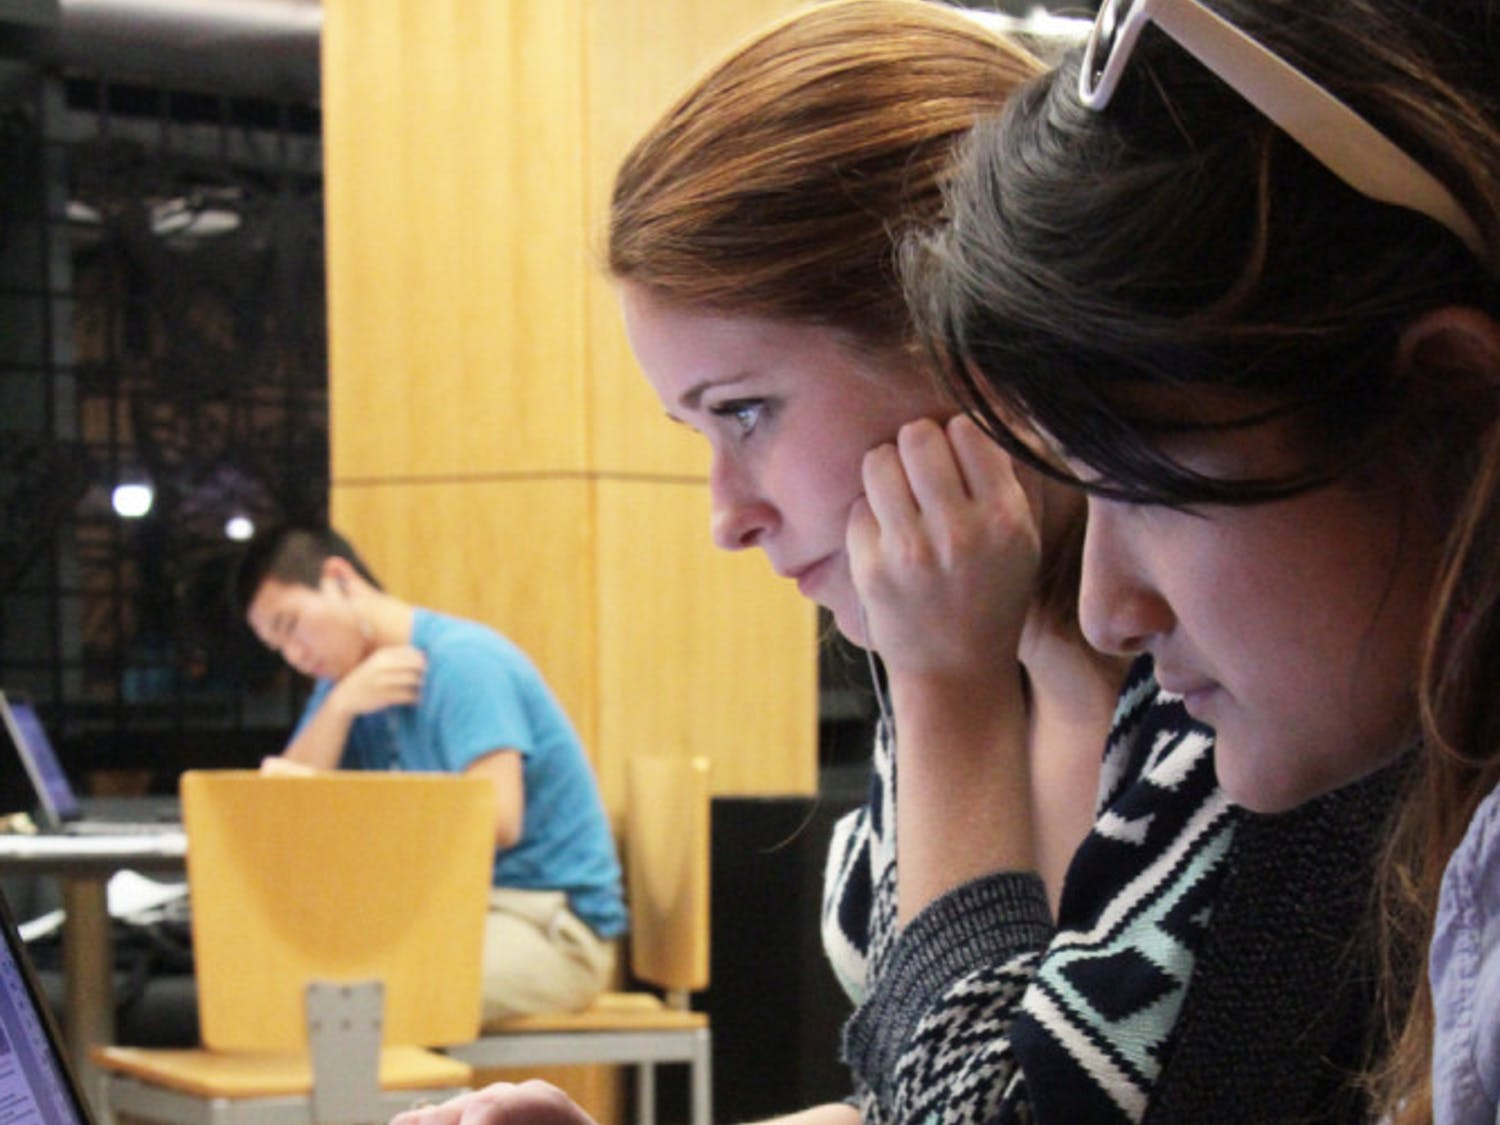 UF advertising juniors Katy Whitehurst, 20, and Ria Burgos, 20, study at Library West on Sunday night.